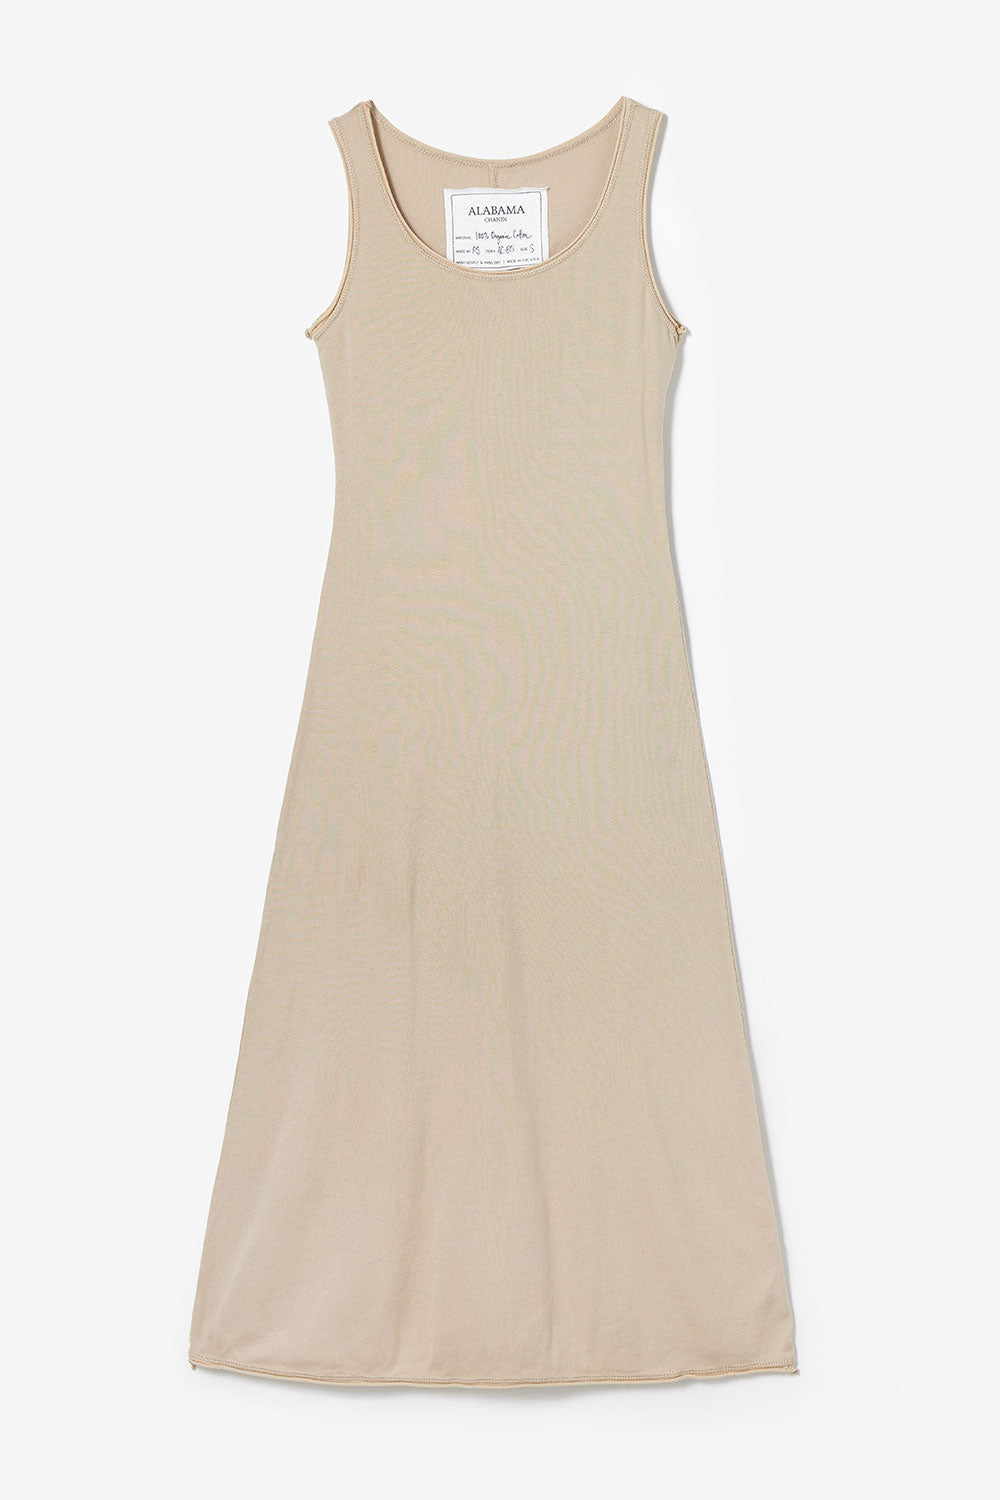 Alabama Chanin The Slip Dress Women's Slip Dress with Rounded Neck in Tan